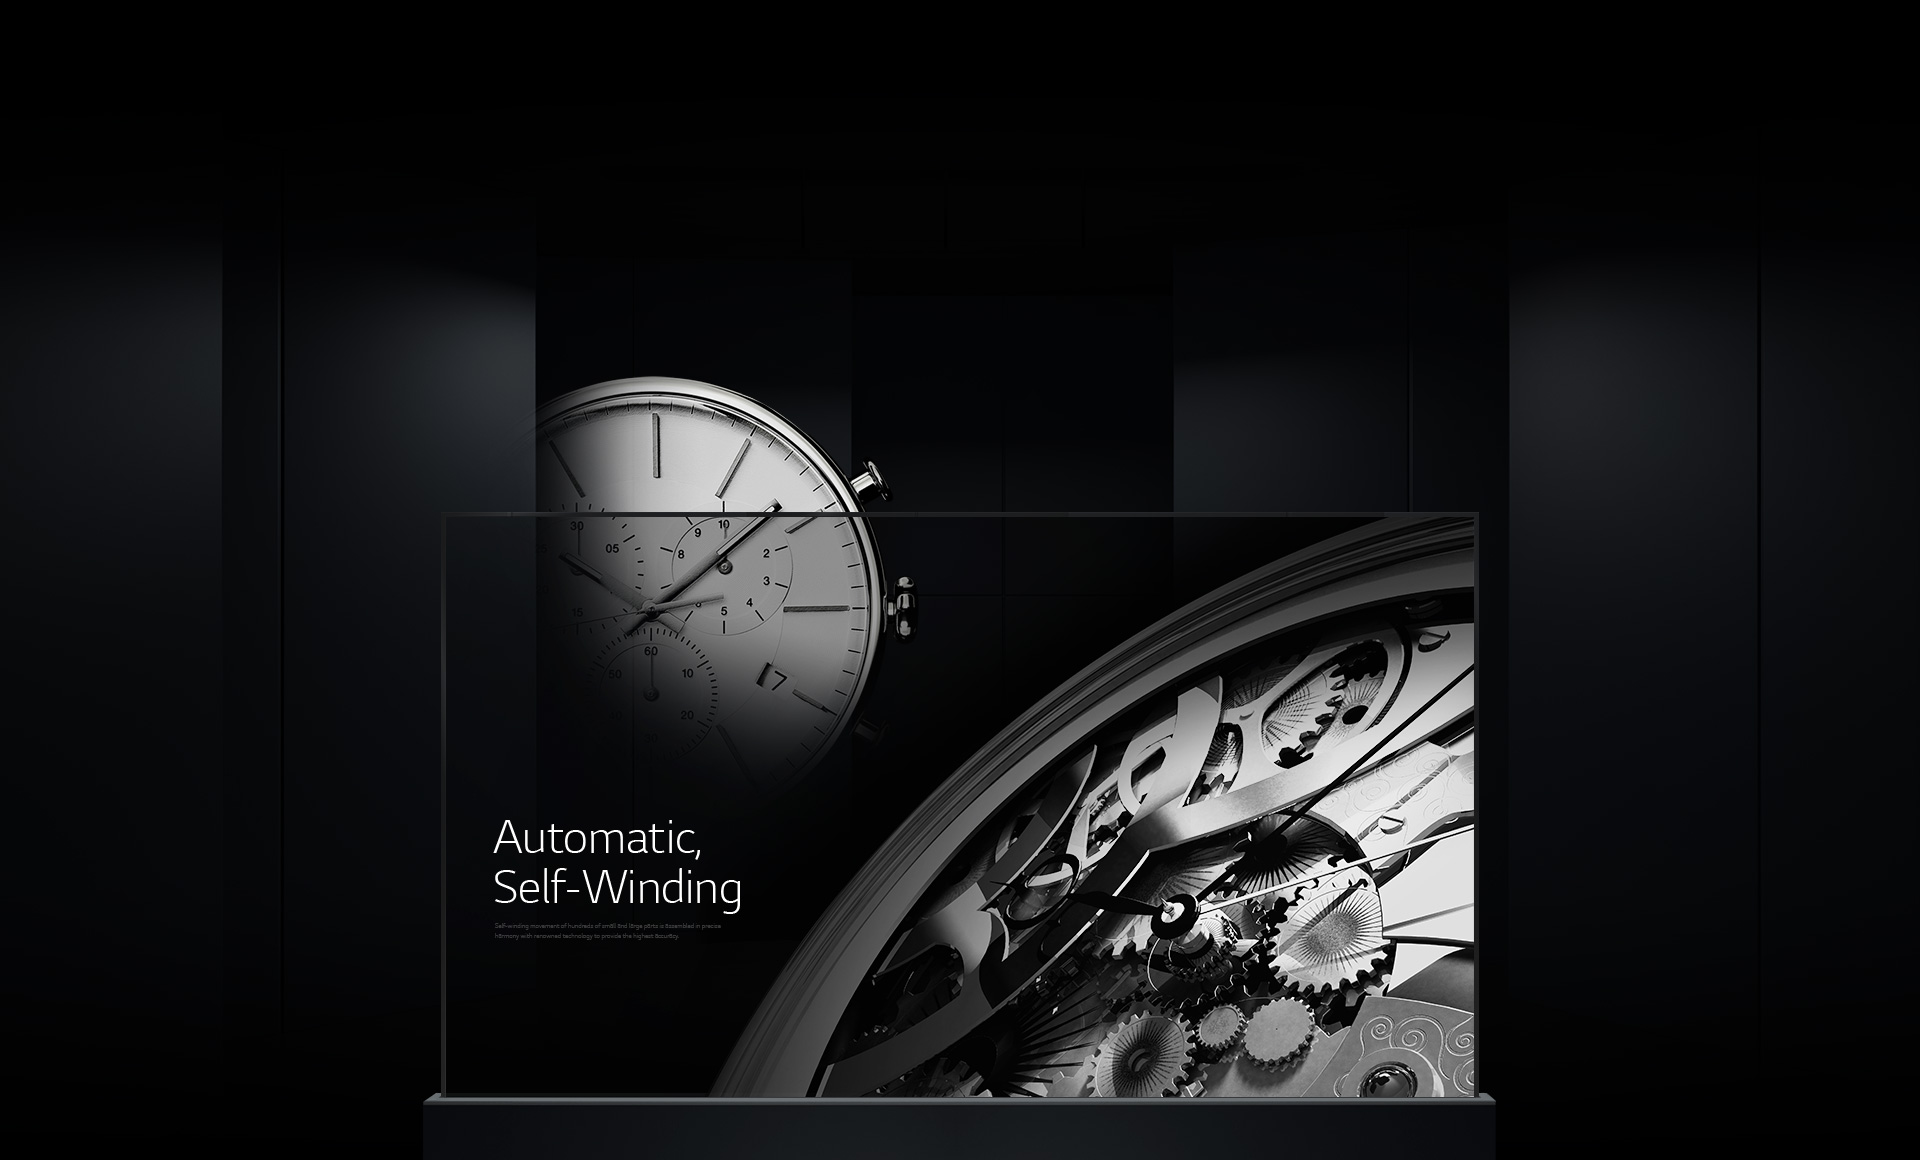 Imagery of automatic and movement parts displayed on a single Transparent OLED signage overlaid with a luxurious watch image in the background.